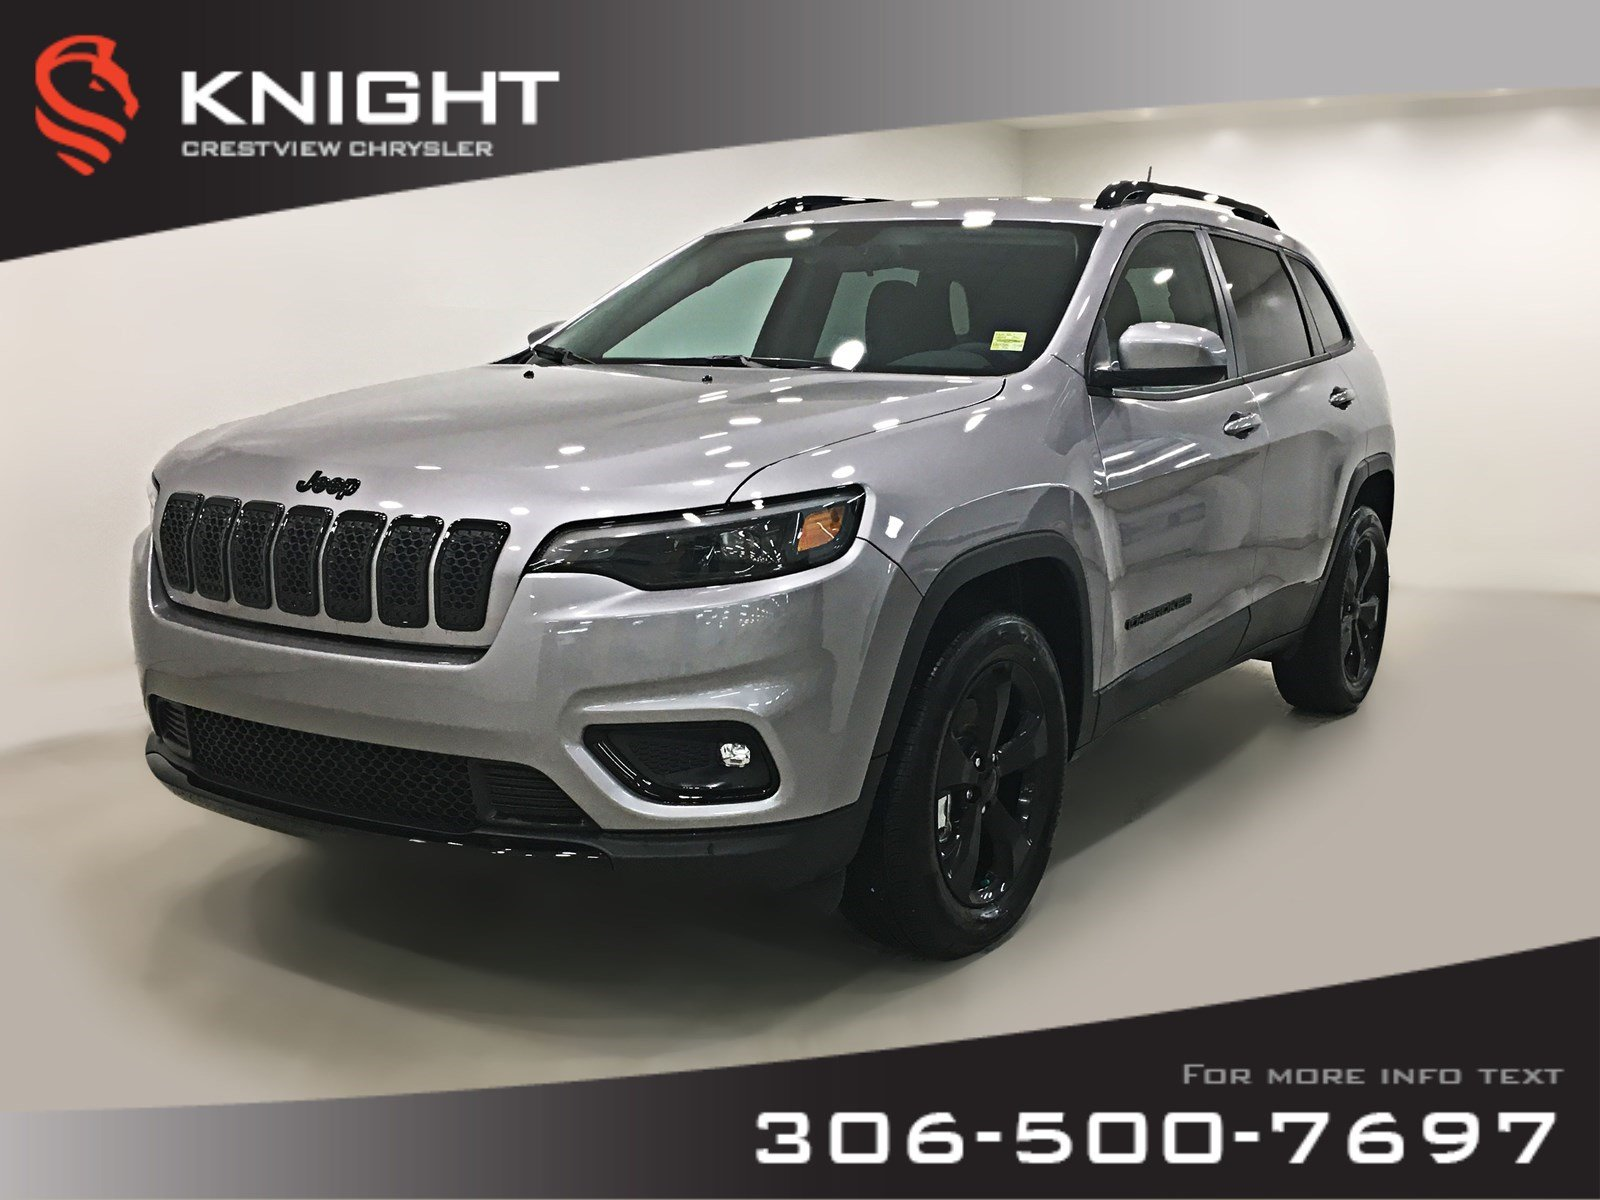 New Jeep Cherokee >> New 2019 Jeep Cherokee Altitude 4x4 V6 Heated Seats And Steering Wheel Remote Start 4wd Sport Utility